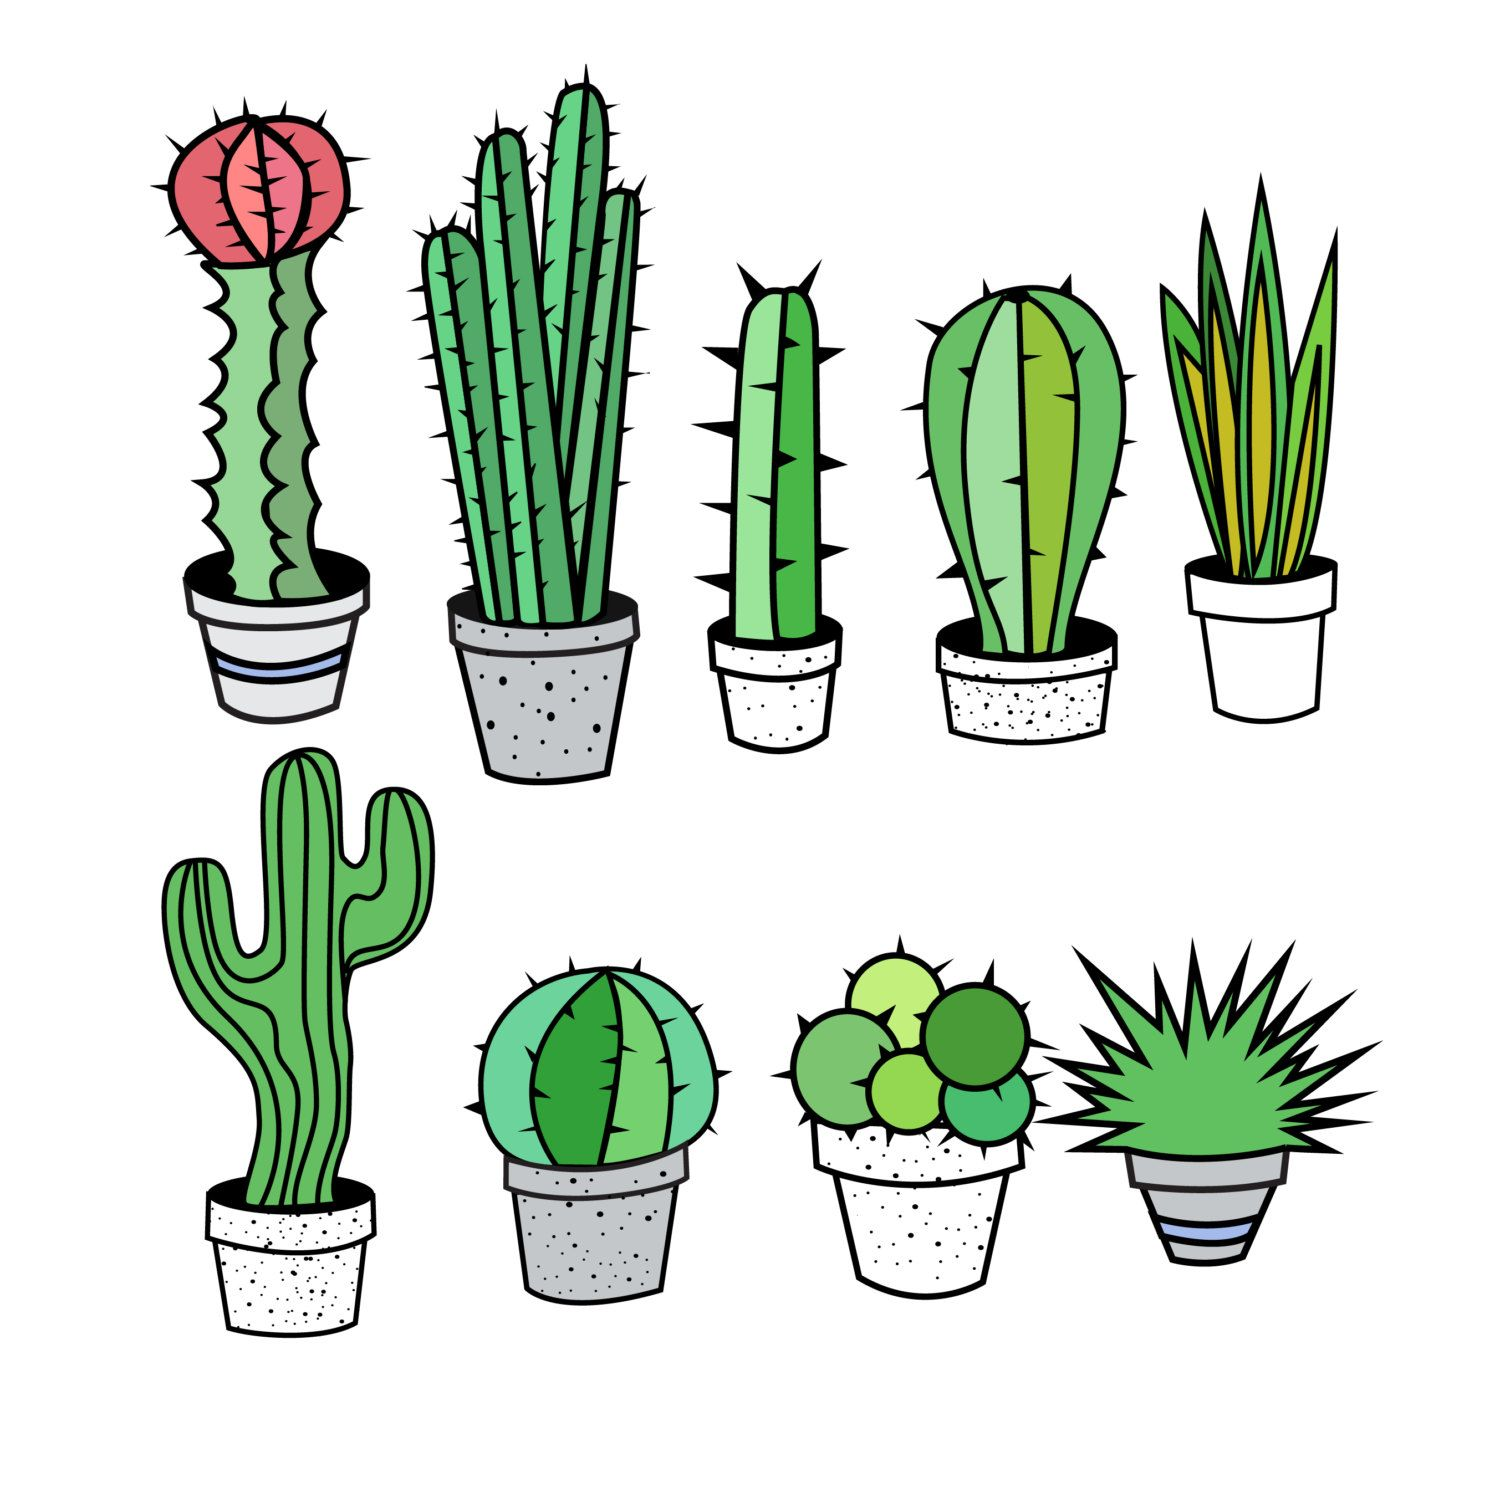 cactus clipart cactus clip art tribal clipart tribal clip art rh pinterest com cactus clip art black and white cactus clip art colored